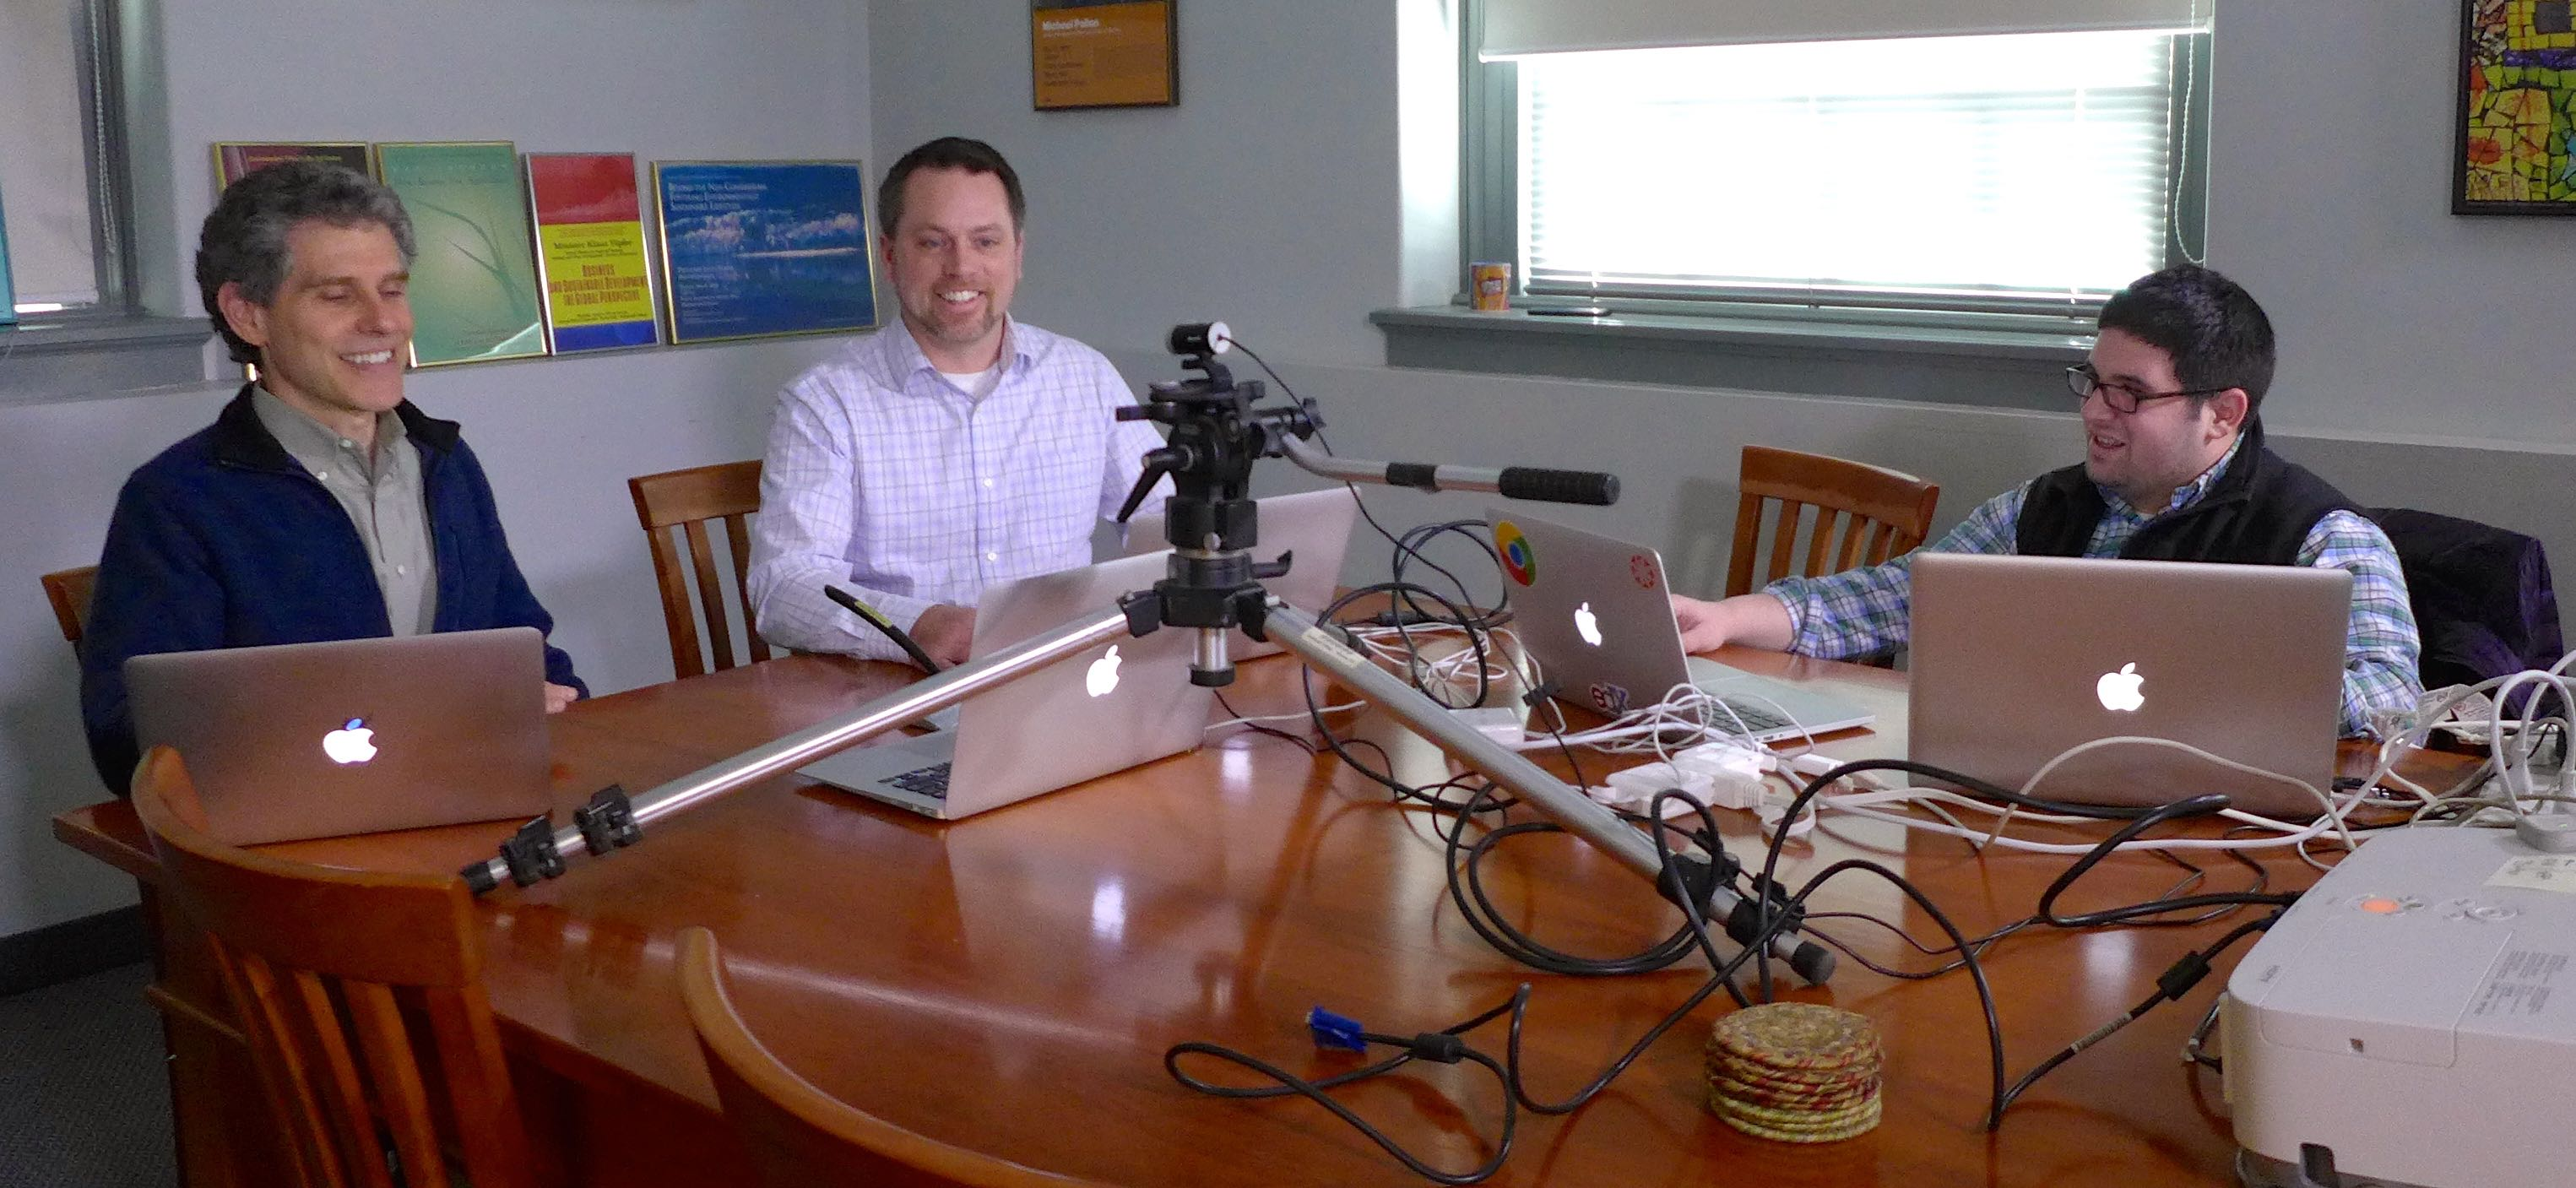 ENVX Office Hours – Going on Air with Google Hangouts